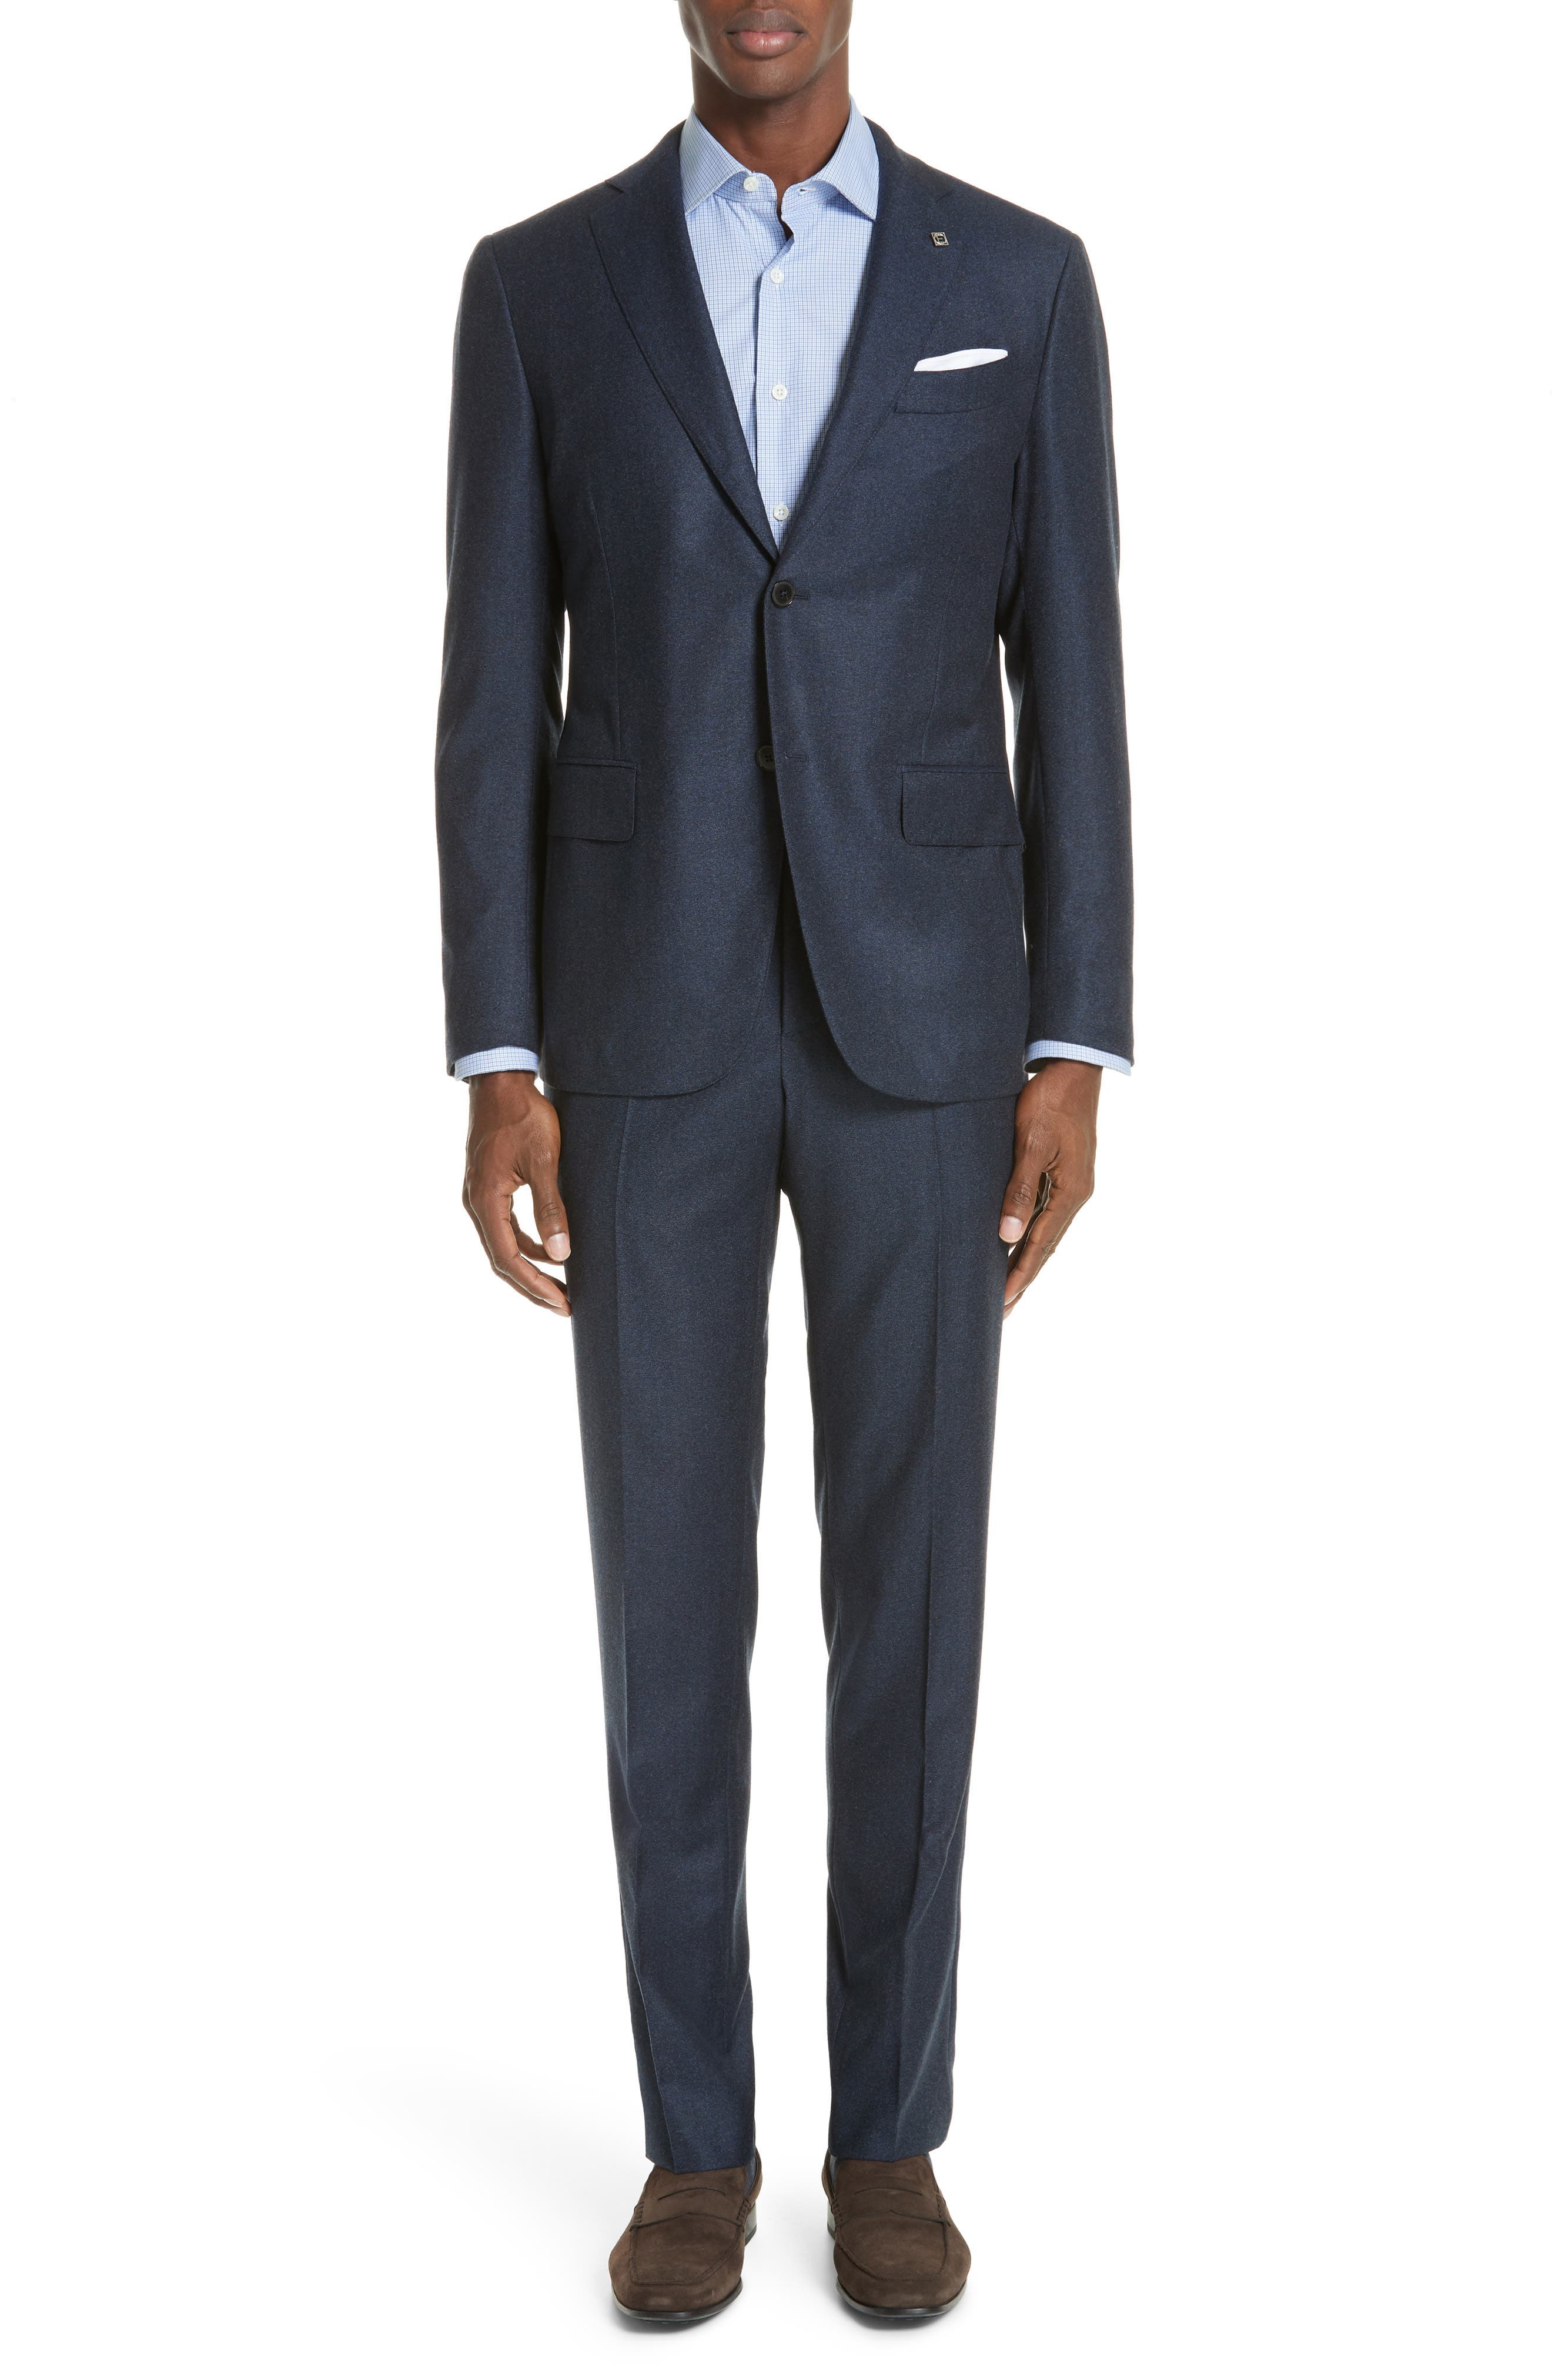 EIDOS Trim Fit Solid Wool Suit in Navy